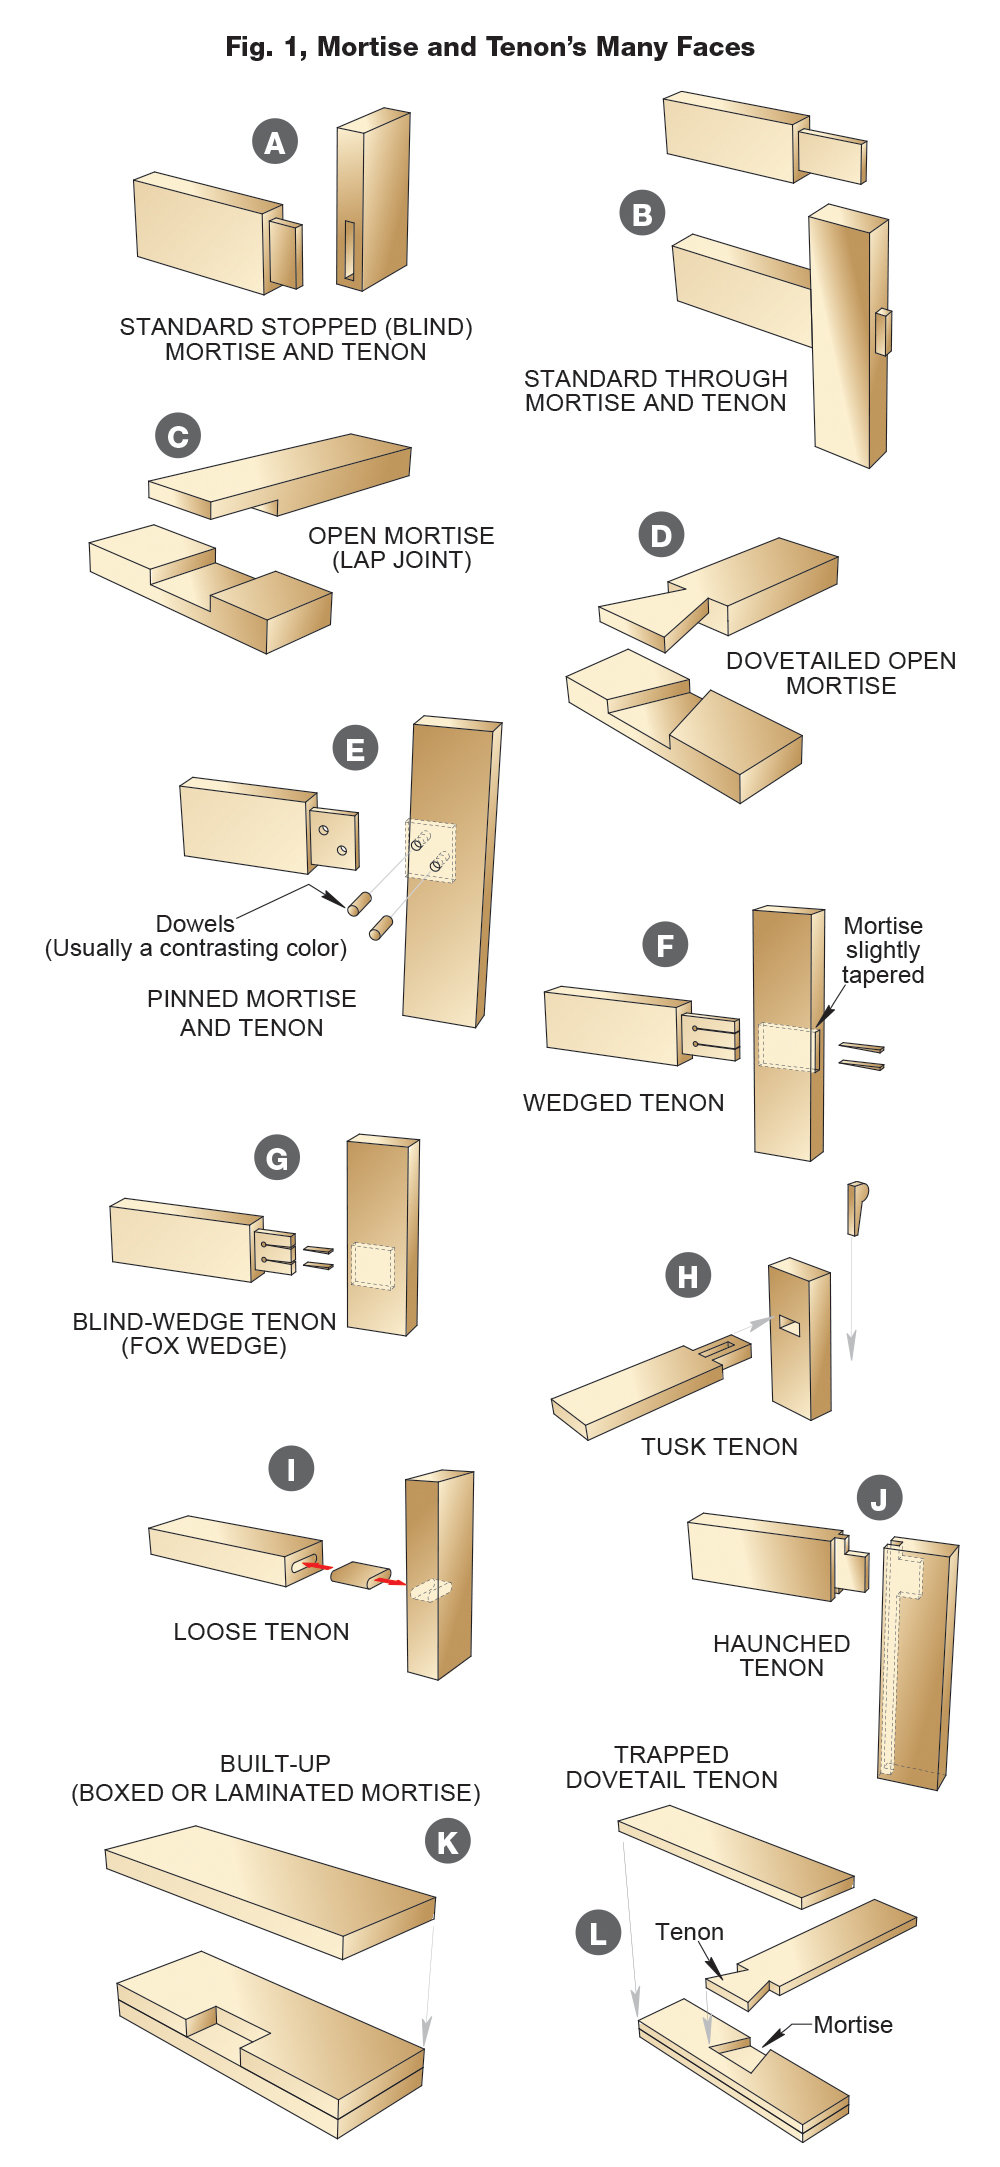 the much-heralded mortise and tenon